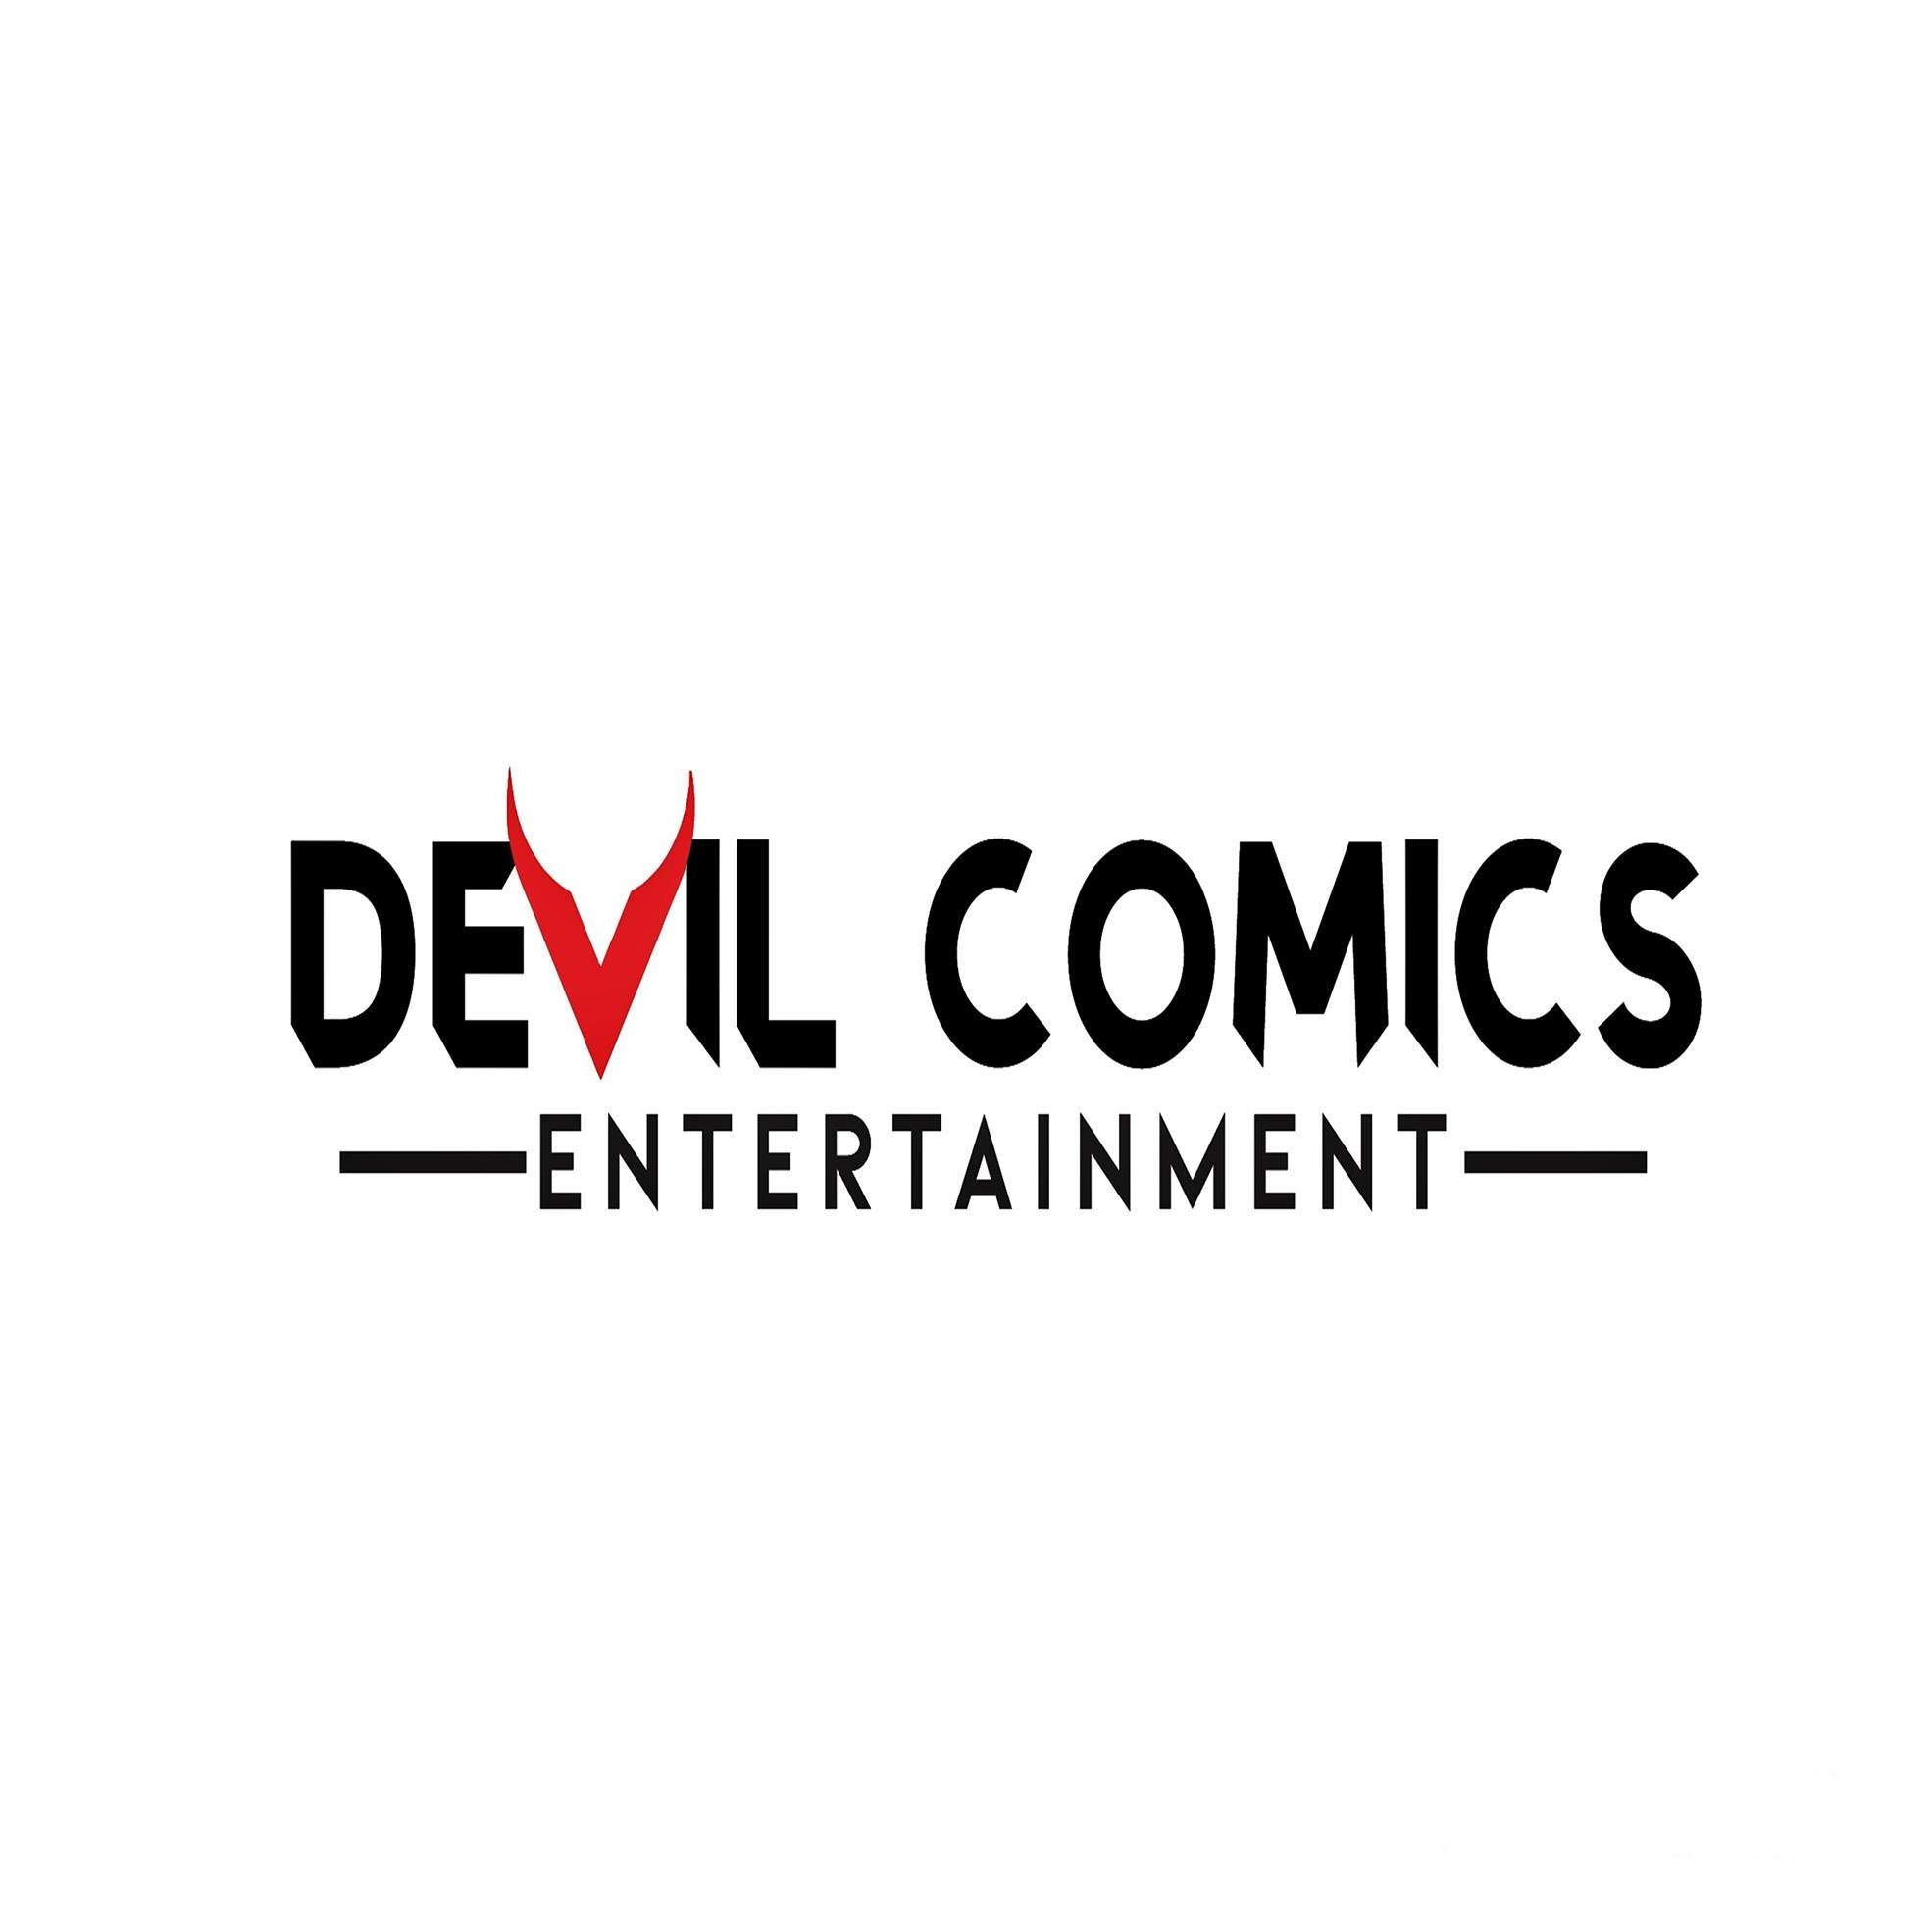 devil-comics-entertainment